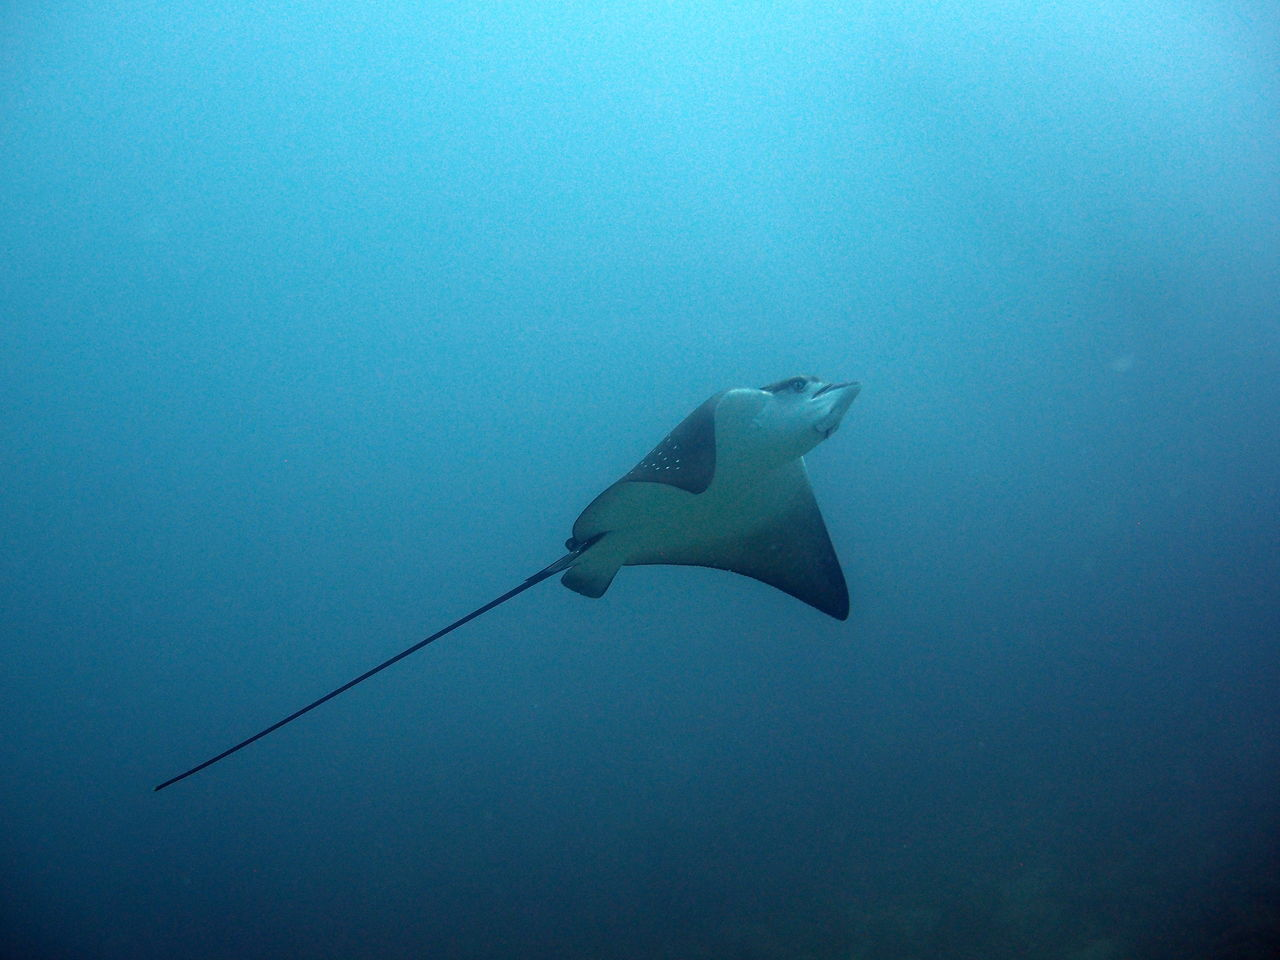 Swimming eagleray at the Galapagos Islands Animal Themes Animal Wildlife Animals In The Wild Eagleray Low Angle View Nature No People One Animal Outdoors Sea Sea Life Swimming UnderSea Underwater Water